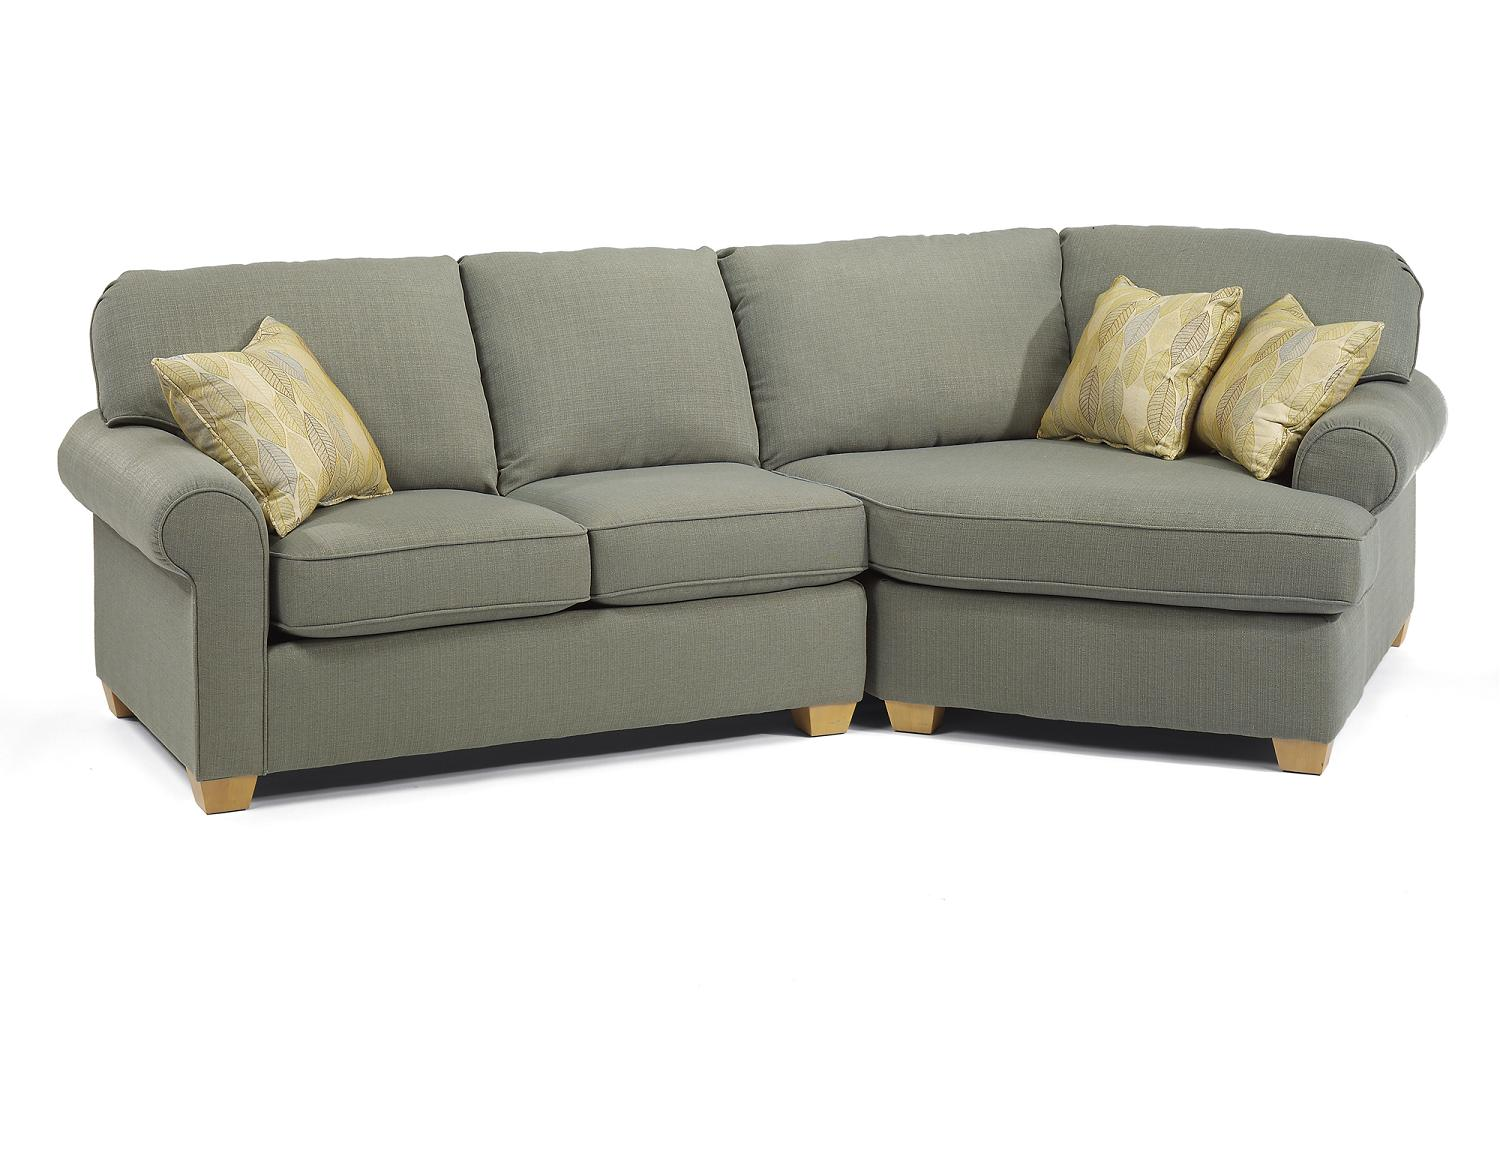 Unique Small Sectional Sofa With Chaise 57 For Modern Sofa Inspiration with Small Sectional Sofa With Chaise